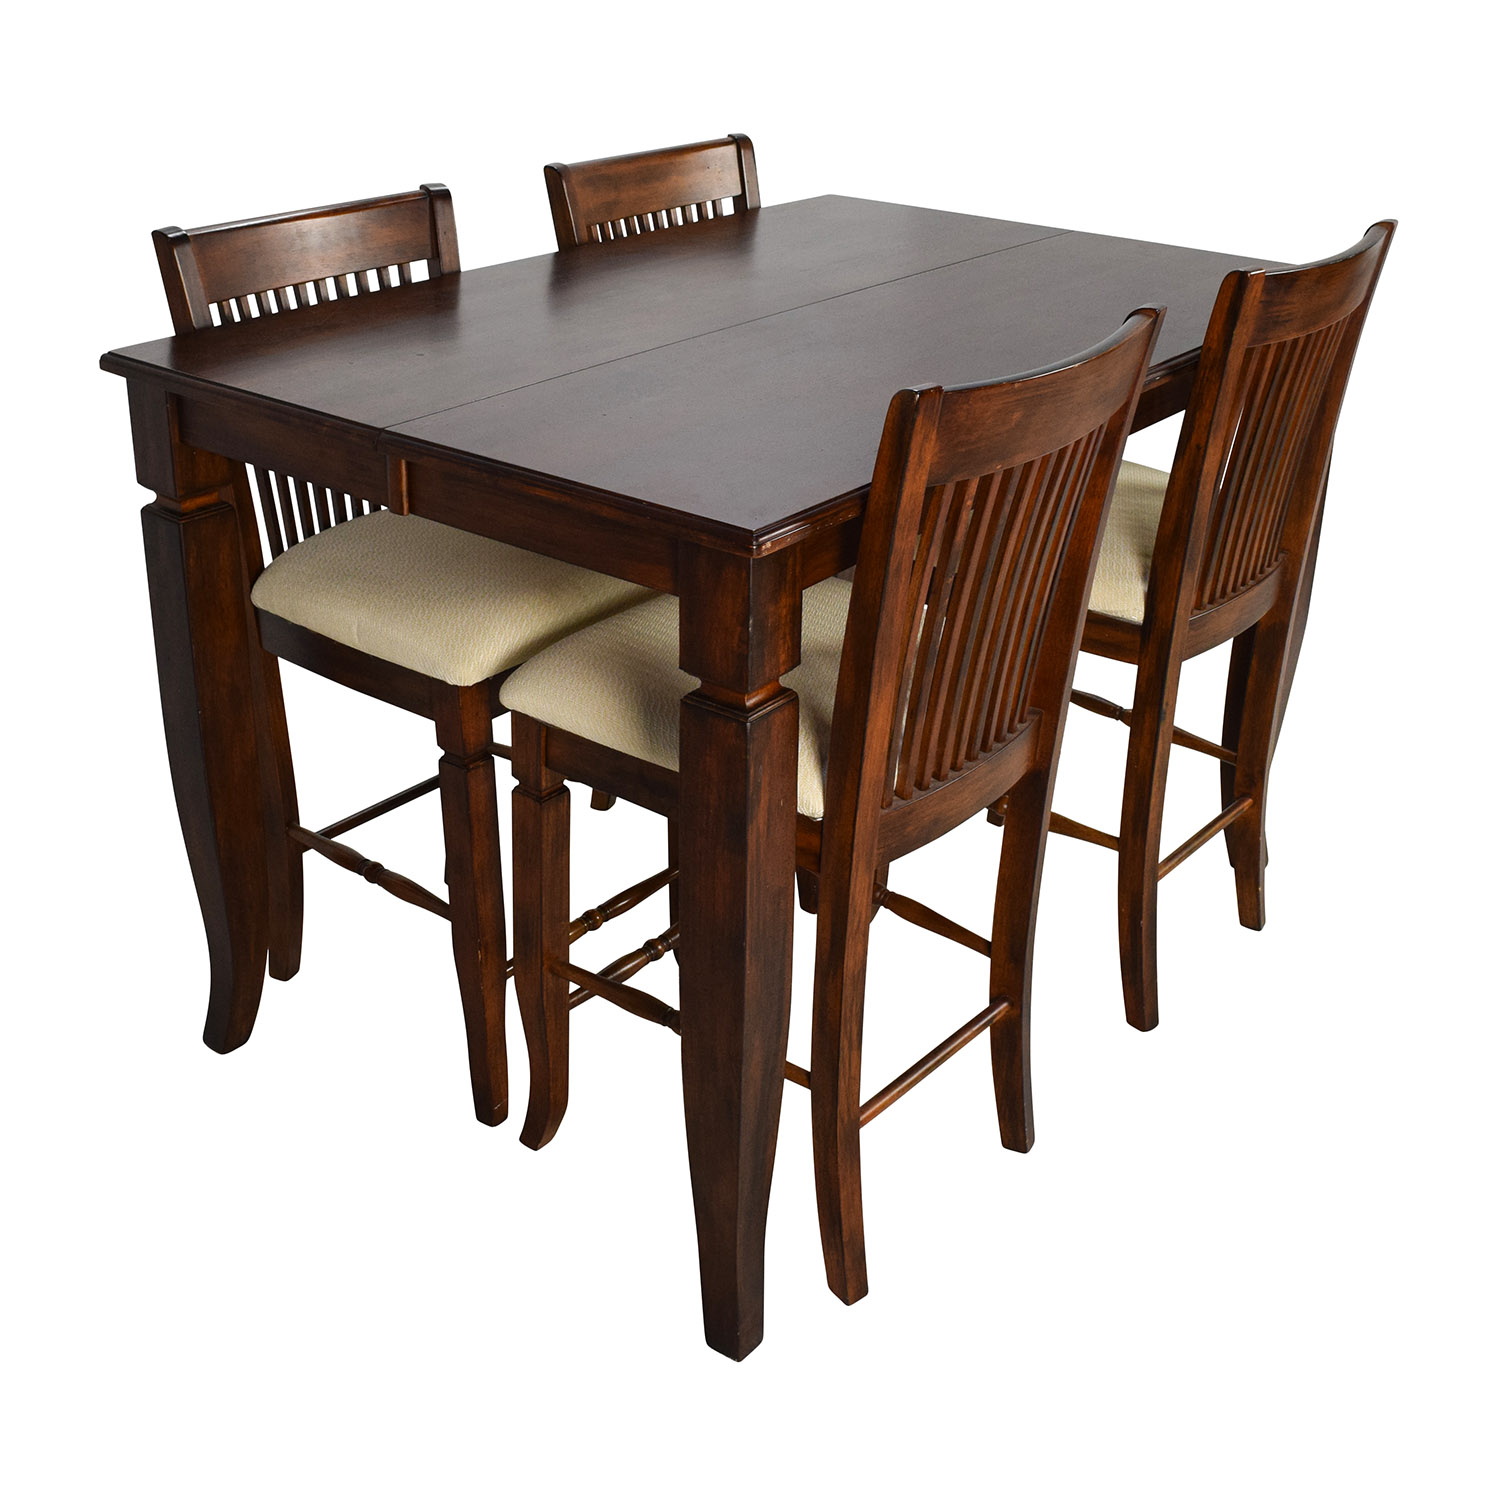 shop Tall Extendable Dining Room Table Set Tables ...  sc 1 st  Furnishare & 75% OFF - Tall Extendable Dining Room Table Set / Tables